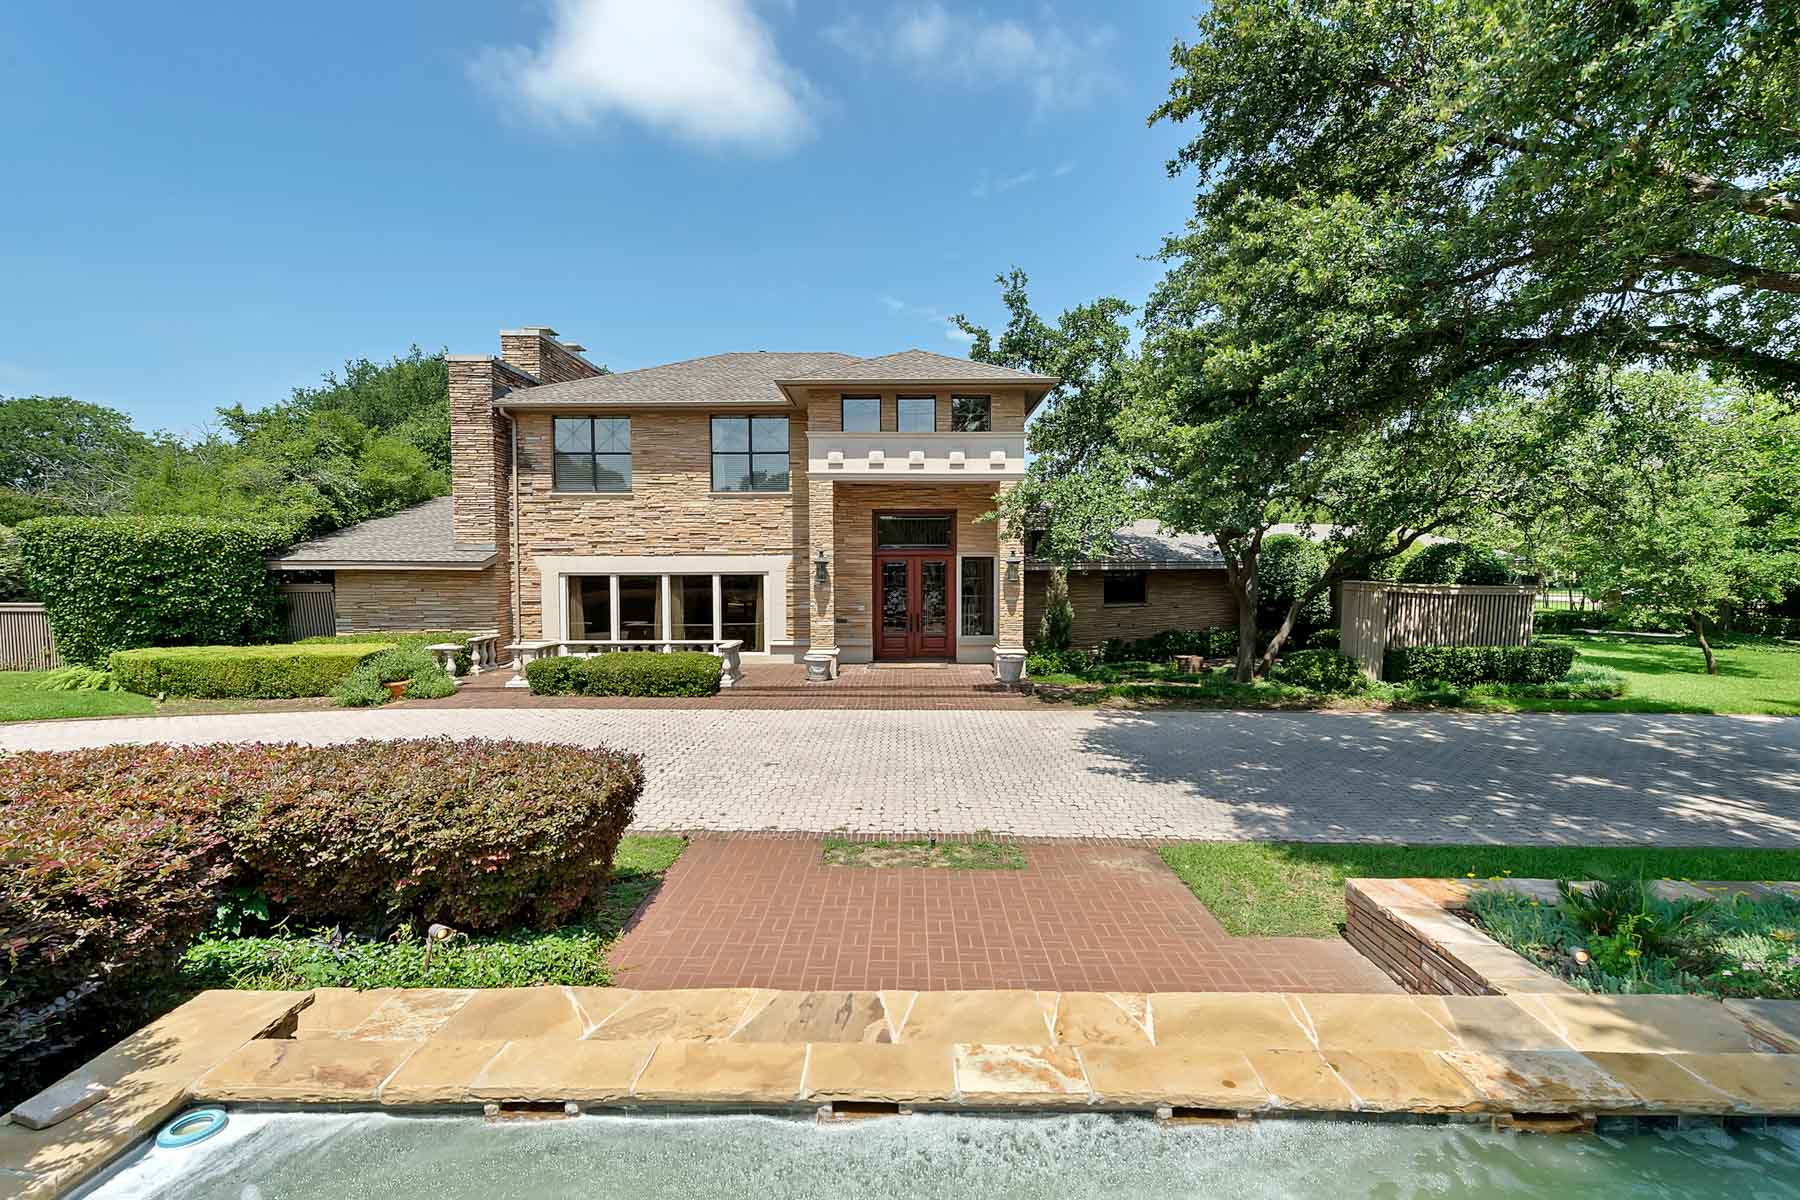 Single Family Home for Sale at Traditional, Westcliff 3809 Encanto Dr Fort Worth, Texas, 76109 United States